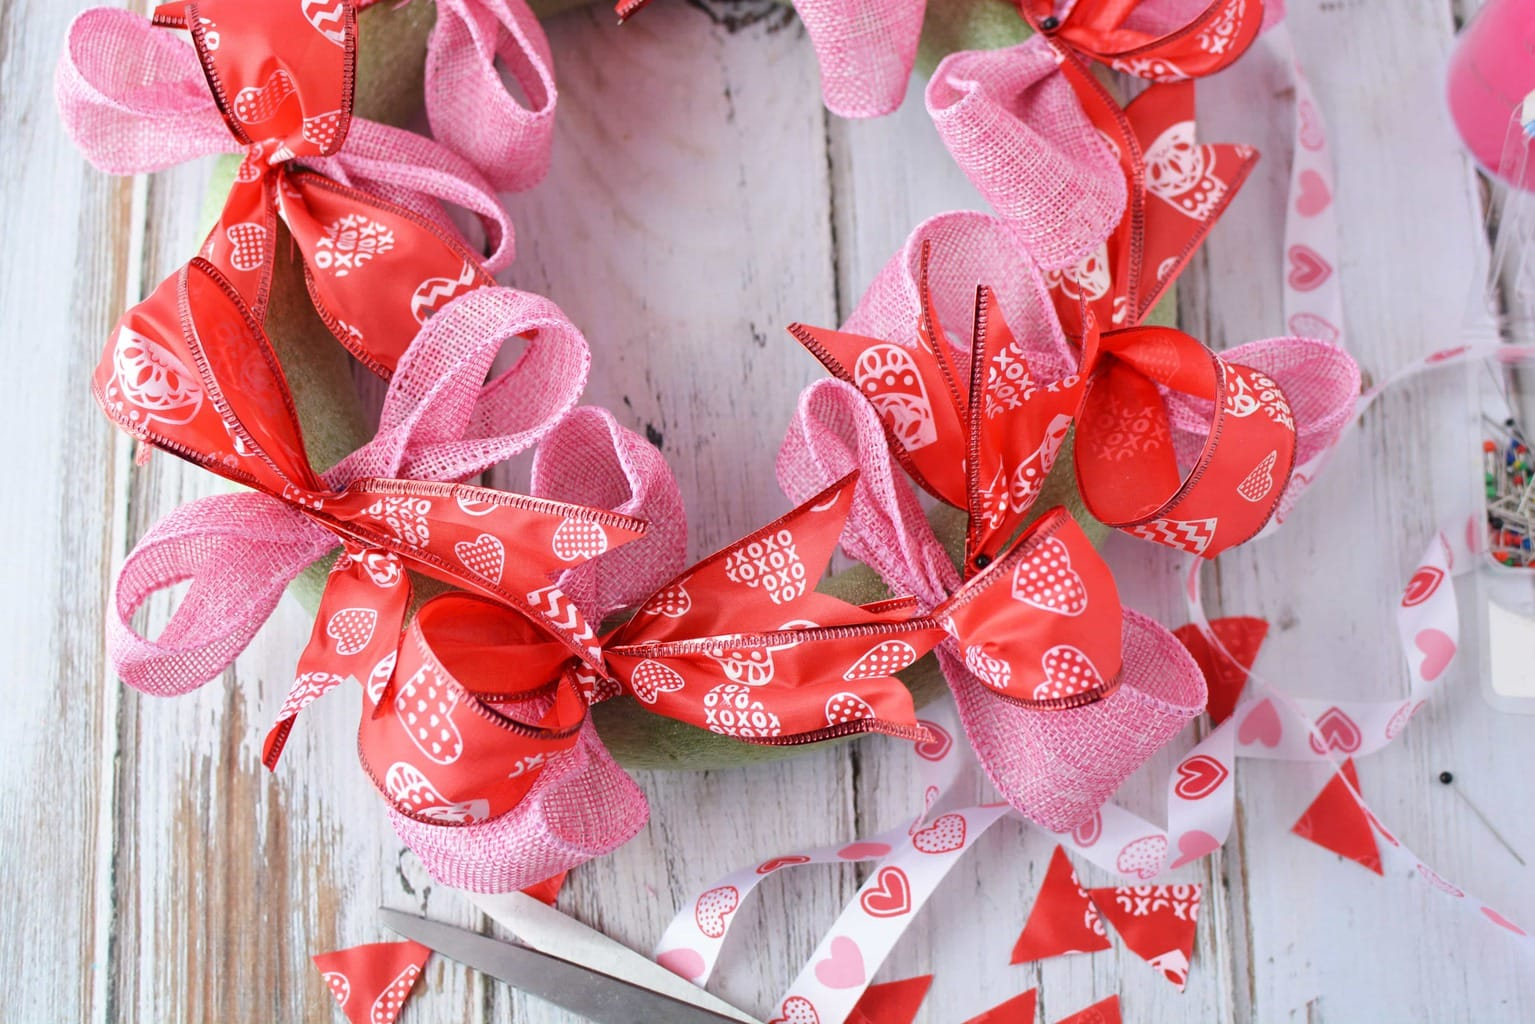 Valentine's Day Wreath, DIY Homemade Wreath, DIY Valentine's Day Wreath, Valentine's Day Crafts, DIY Tutorial for Valentine's Day Wreath, DIY Wreath for Front door